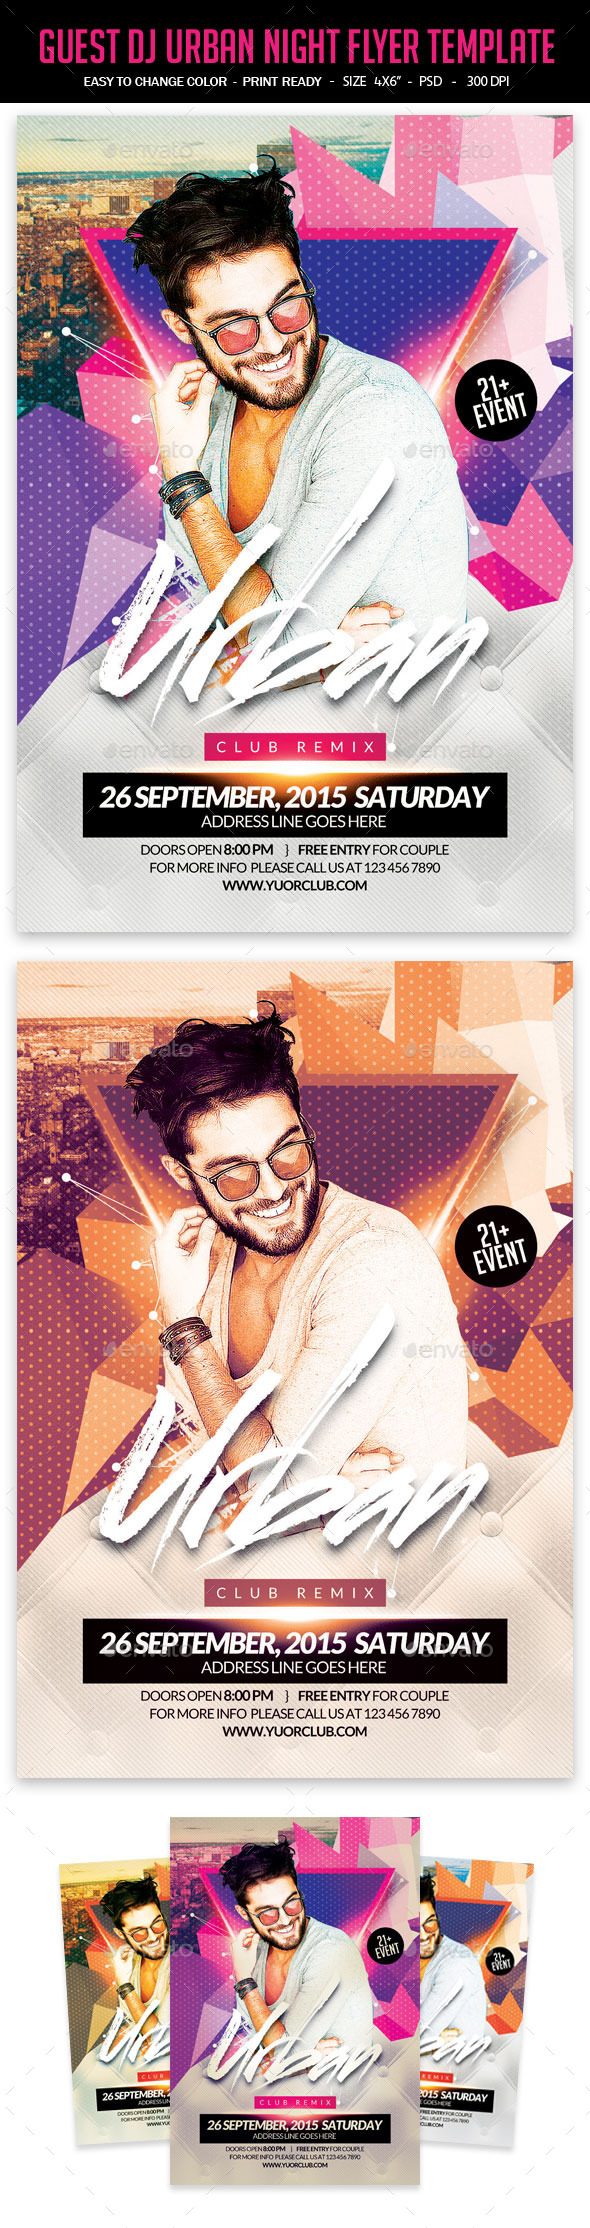 GraphicRiver Guest DJ Urban Night Flyer Template 11817408